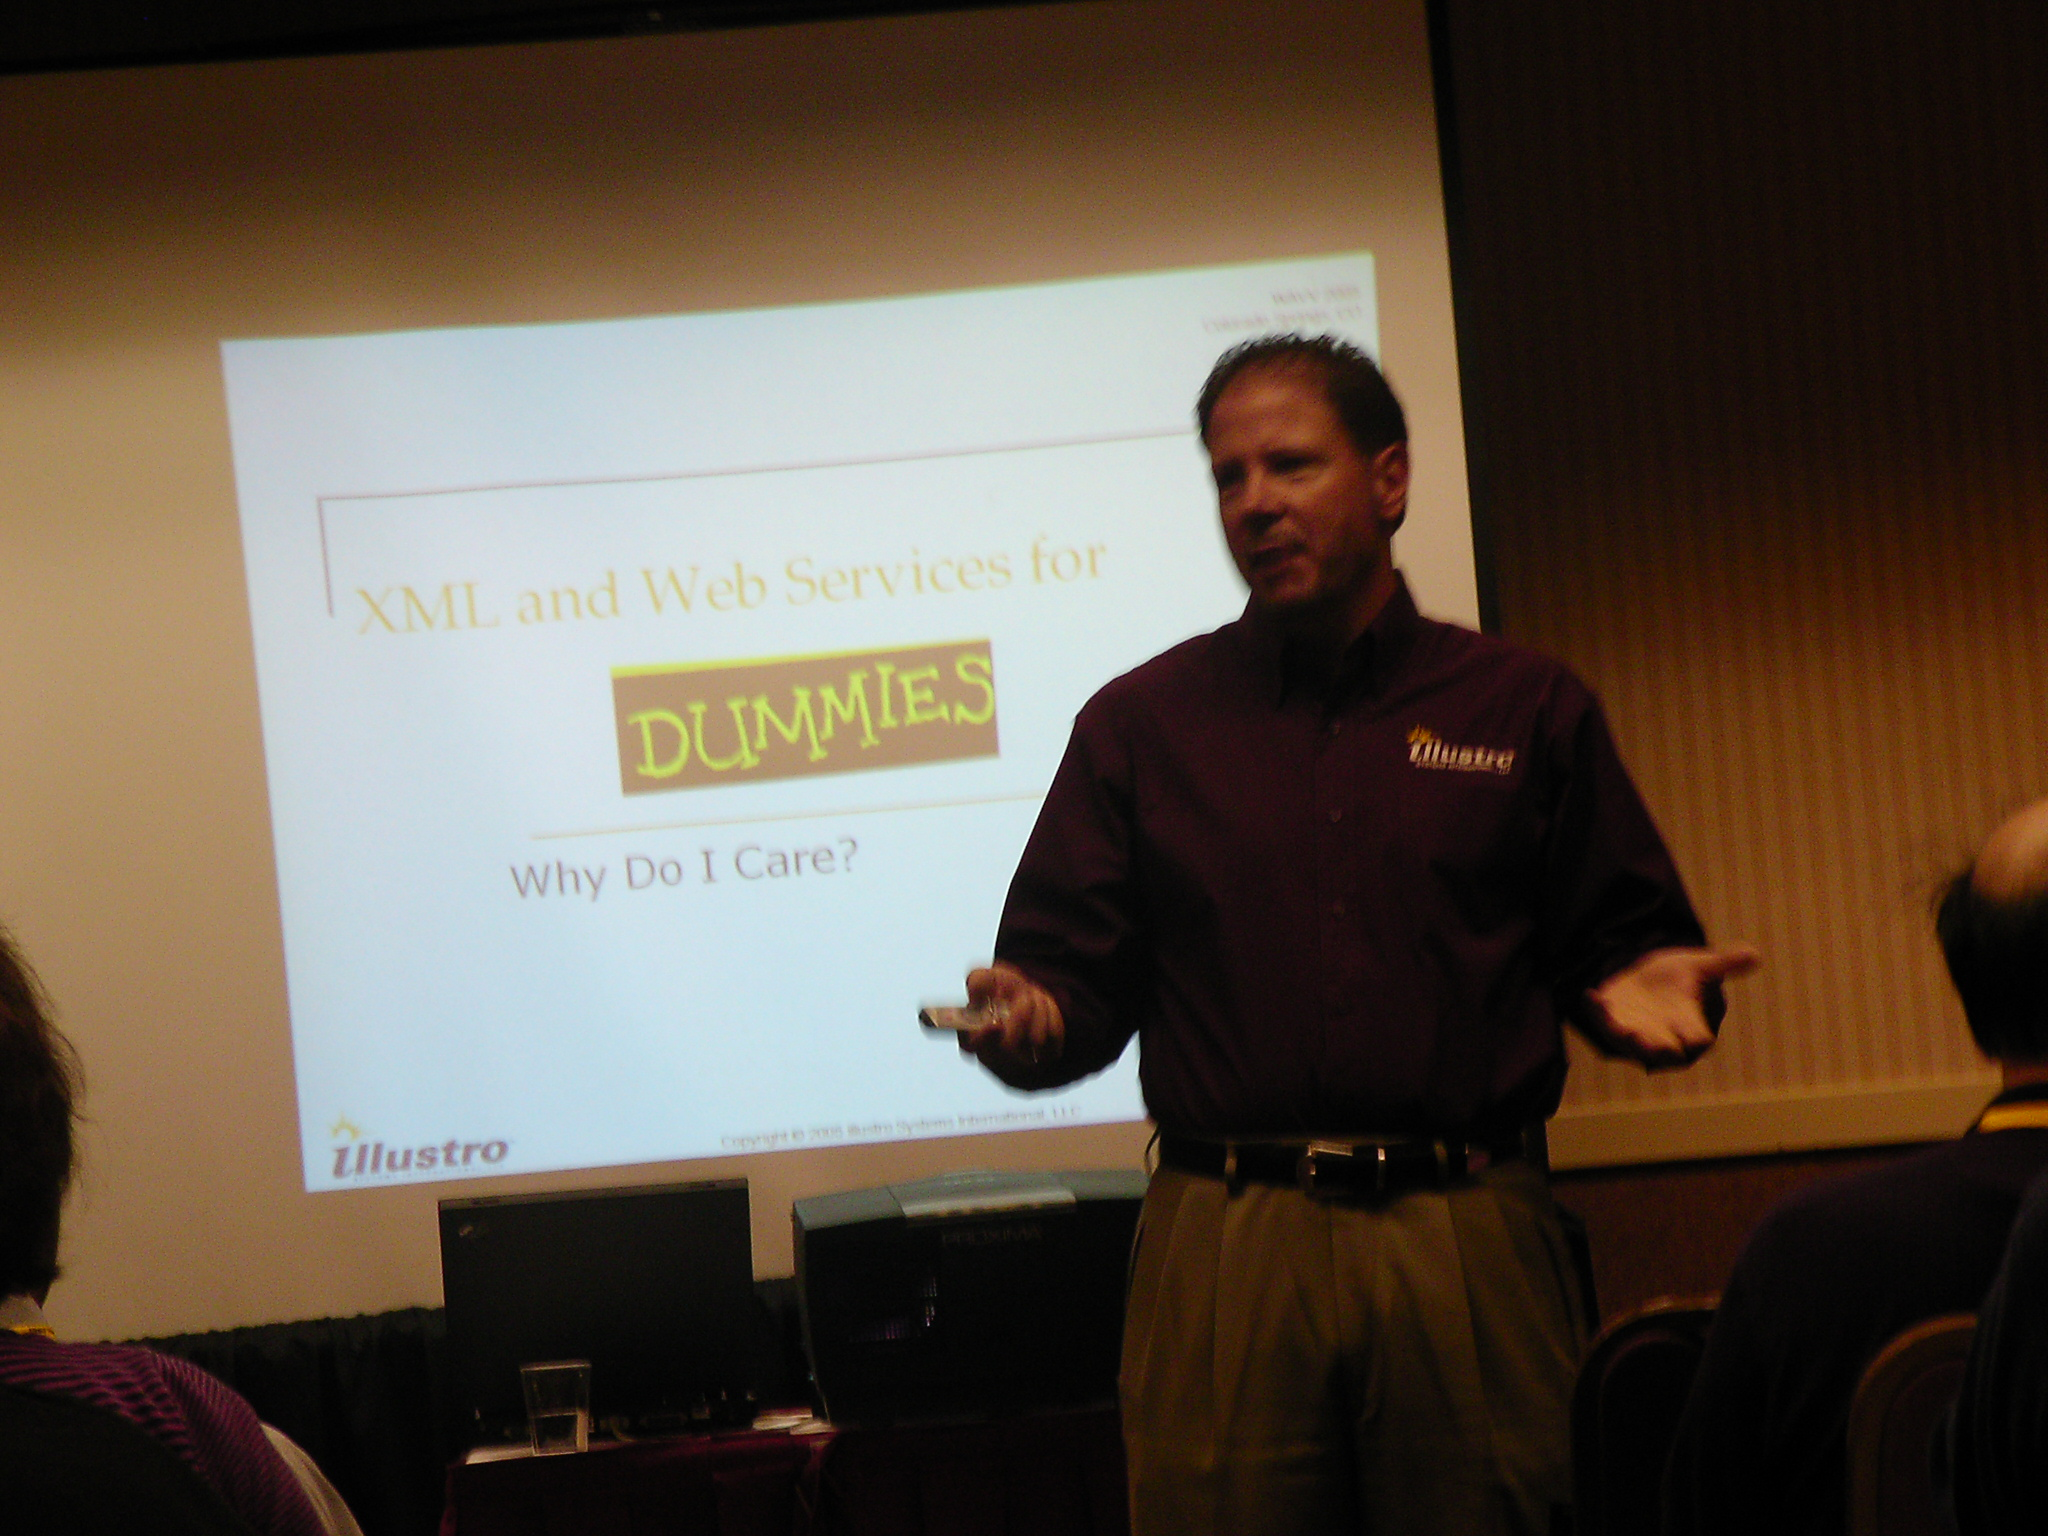 Eric Vaughan, illustro's CEO, delivers one of his sessions on XML and Web Services.